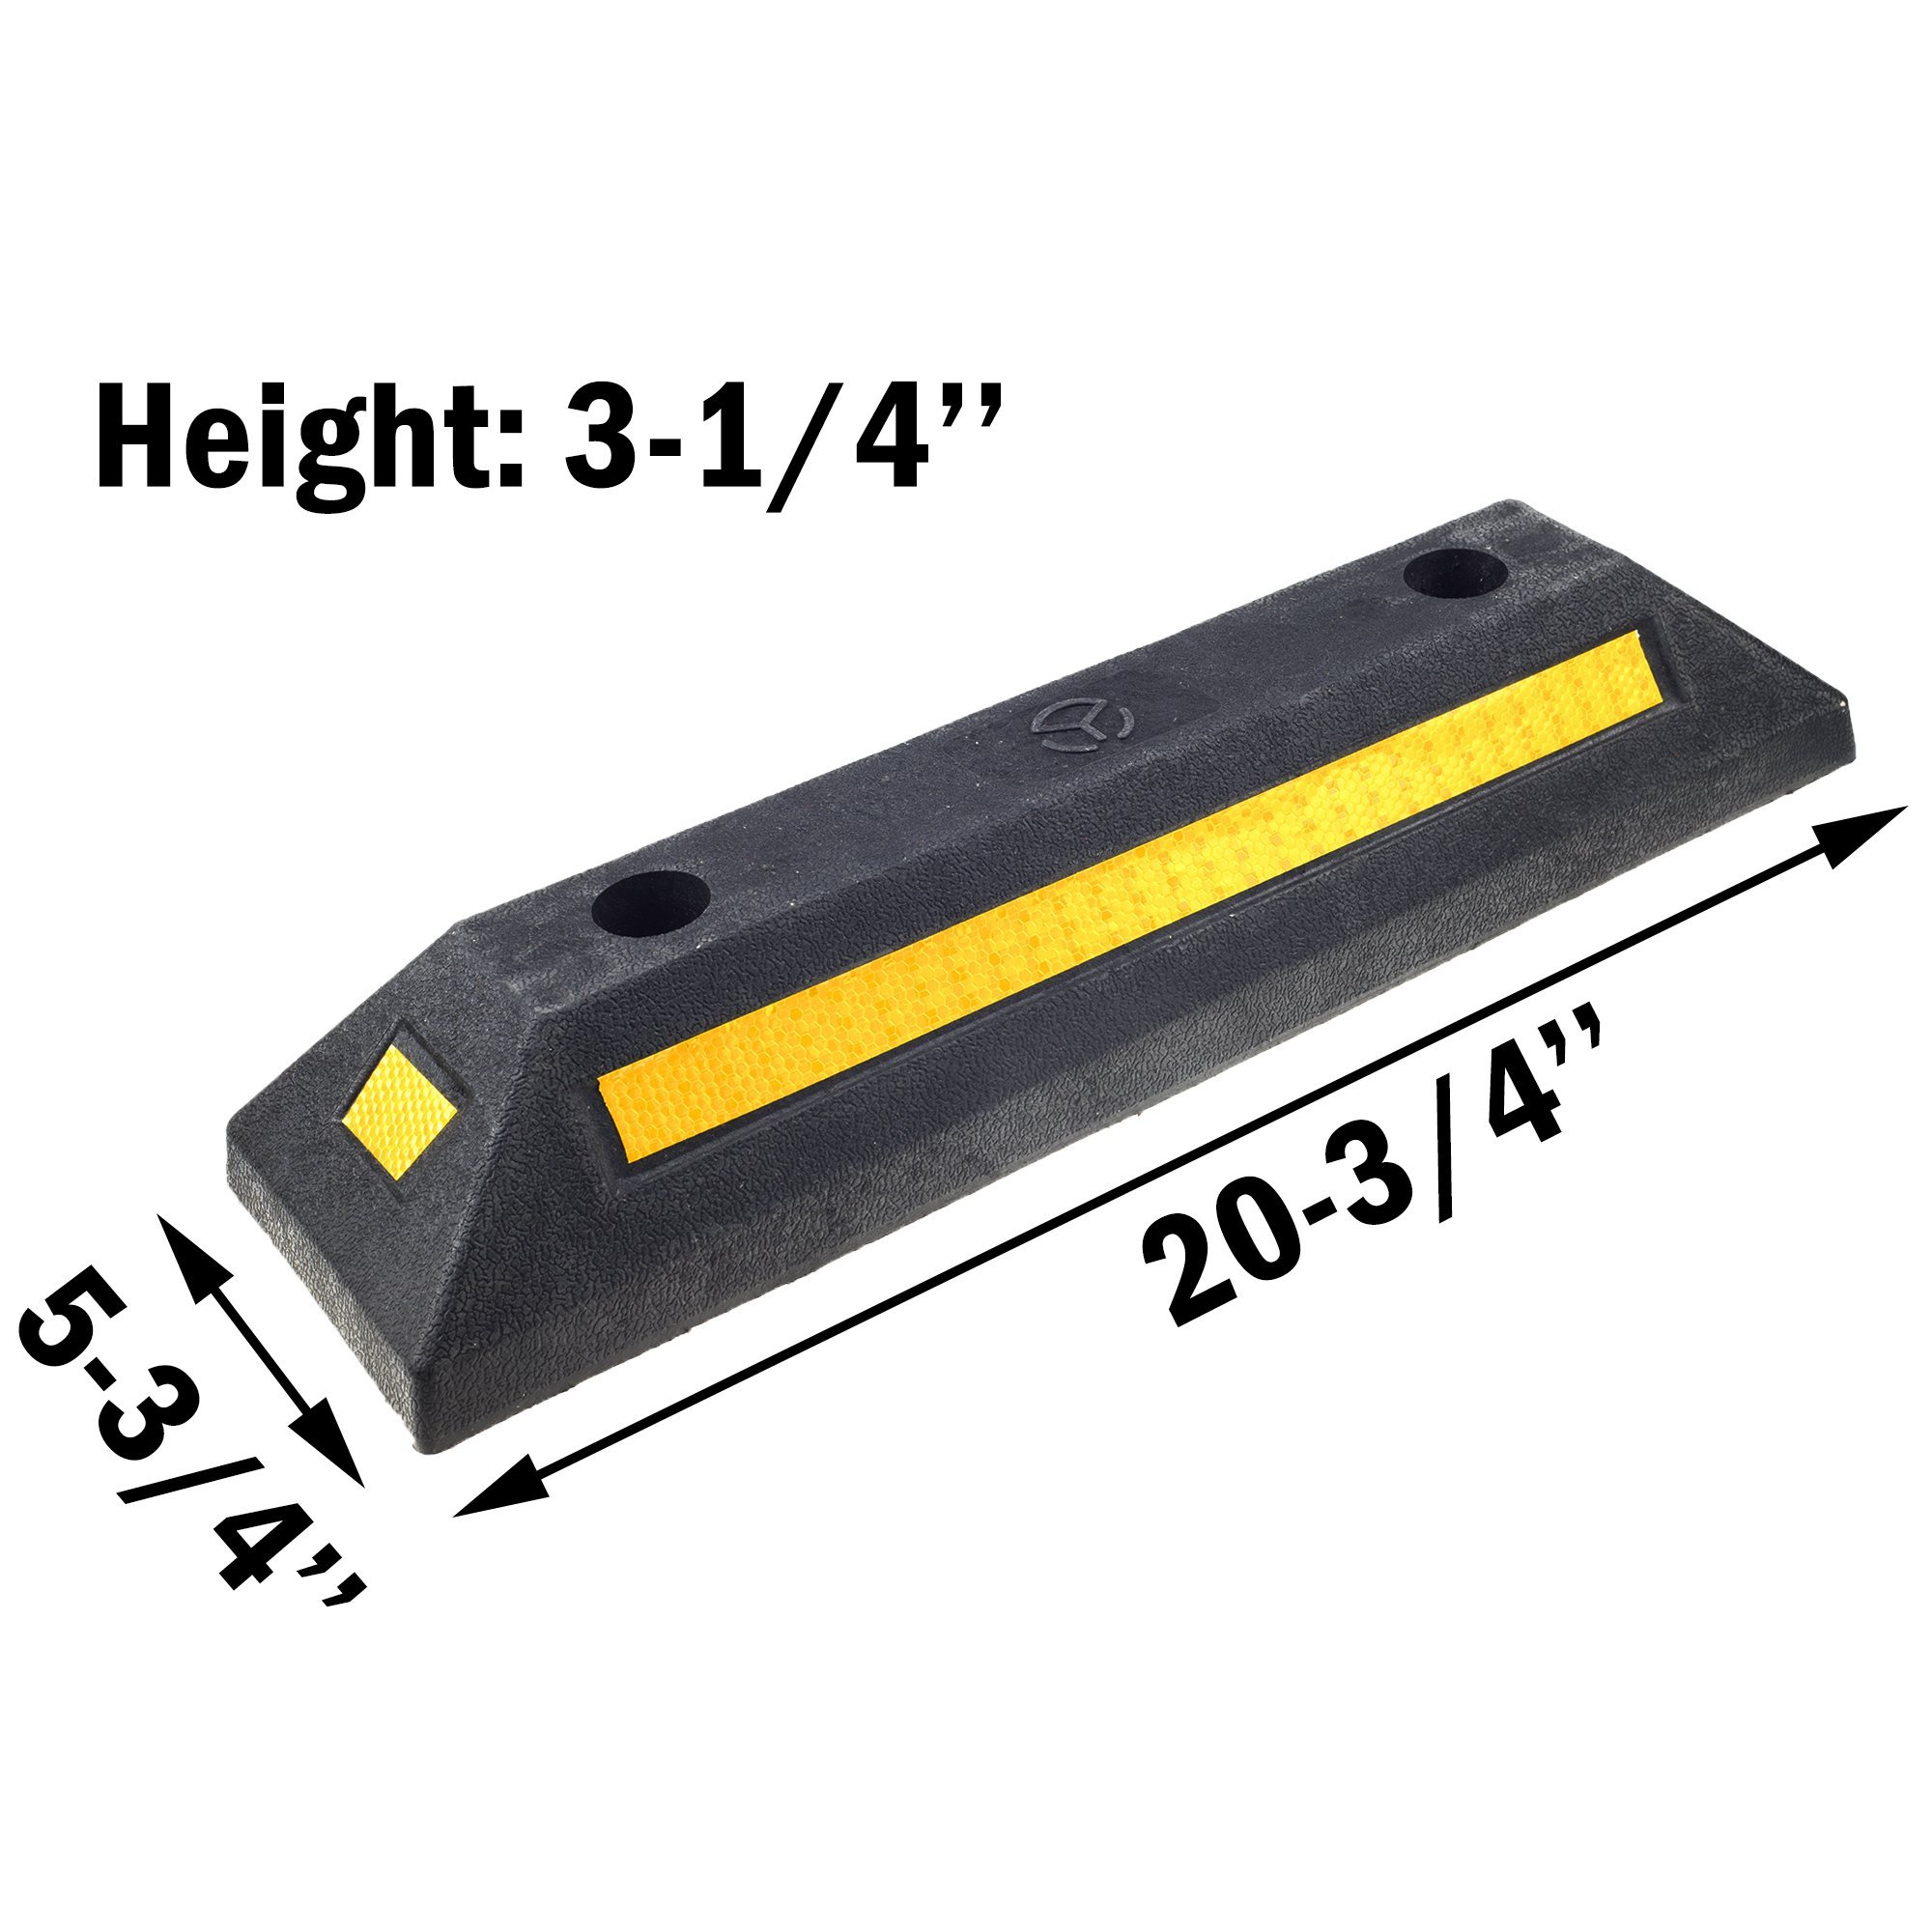 Genubi Industry Rubber Curb, Black Heavy Duty Parking Blocks with Yellow Refective Stripes, Wheel Stop Stoppers for Car, Truck, RV, Trailer, and Garage, 2 Pack Professional Grade by Genubi Industry (Image #2)